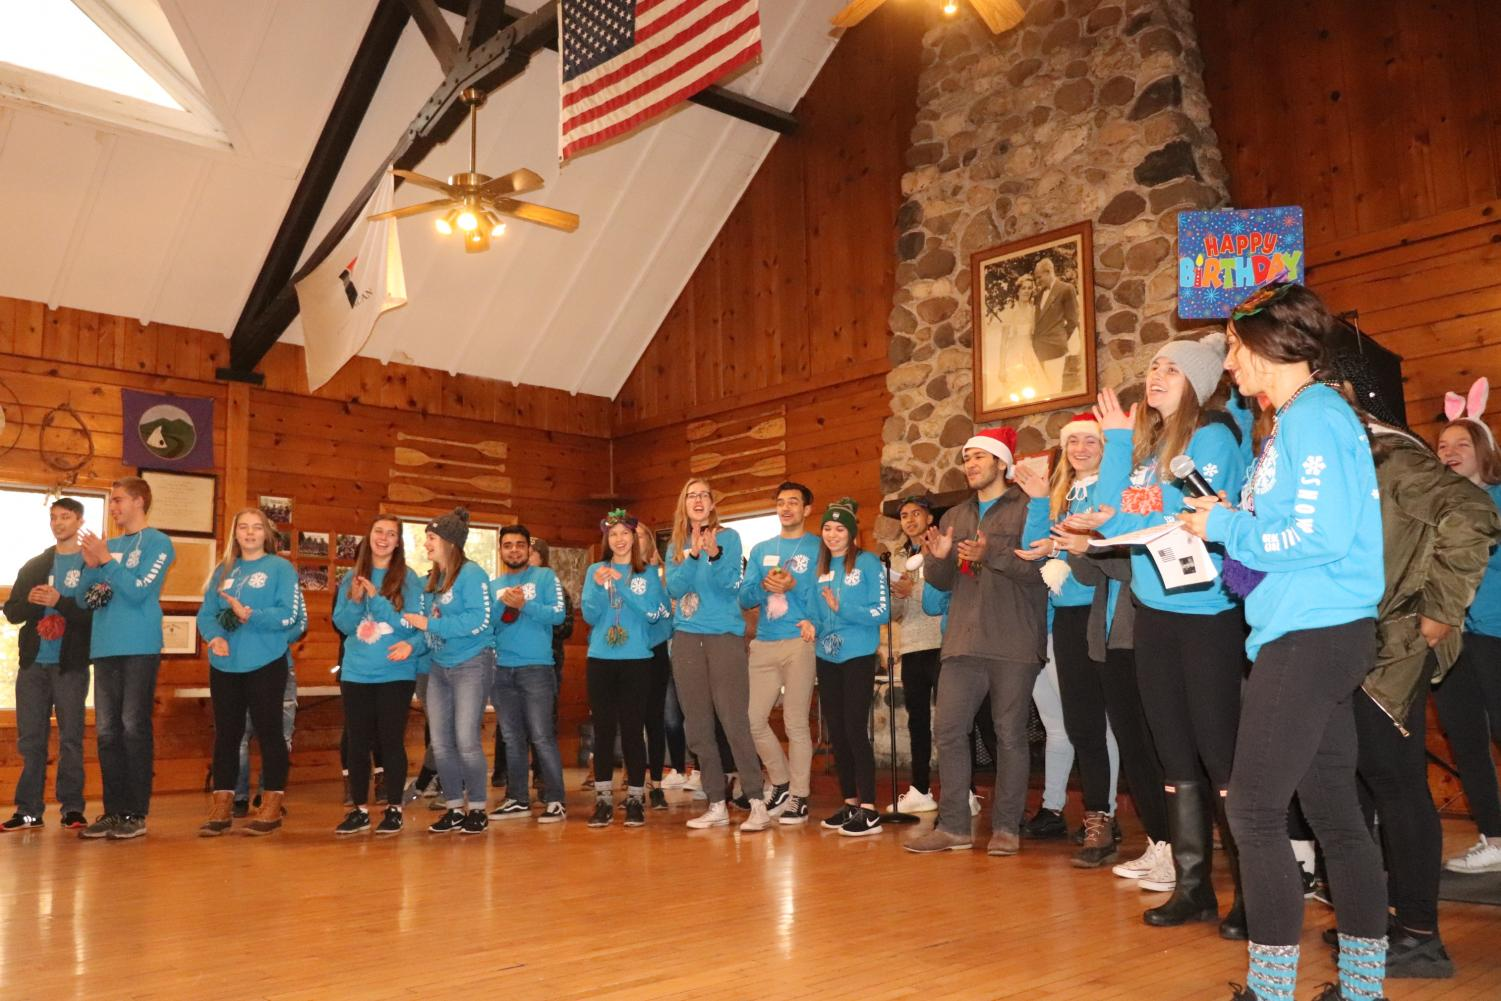 YACs introducing the Snowball day. Photo provided by Snowball sponsor Angela Gargiulo